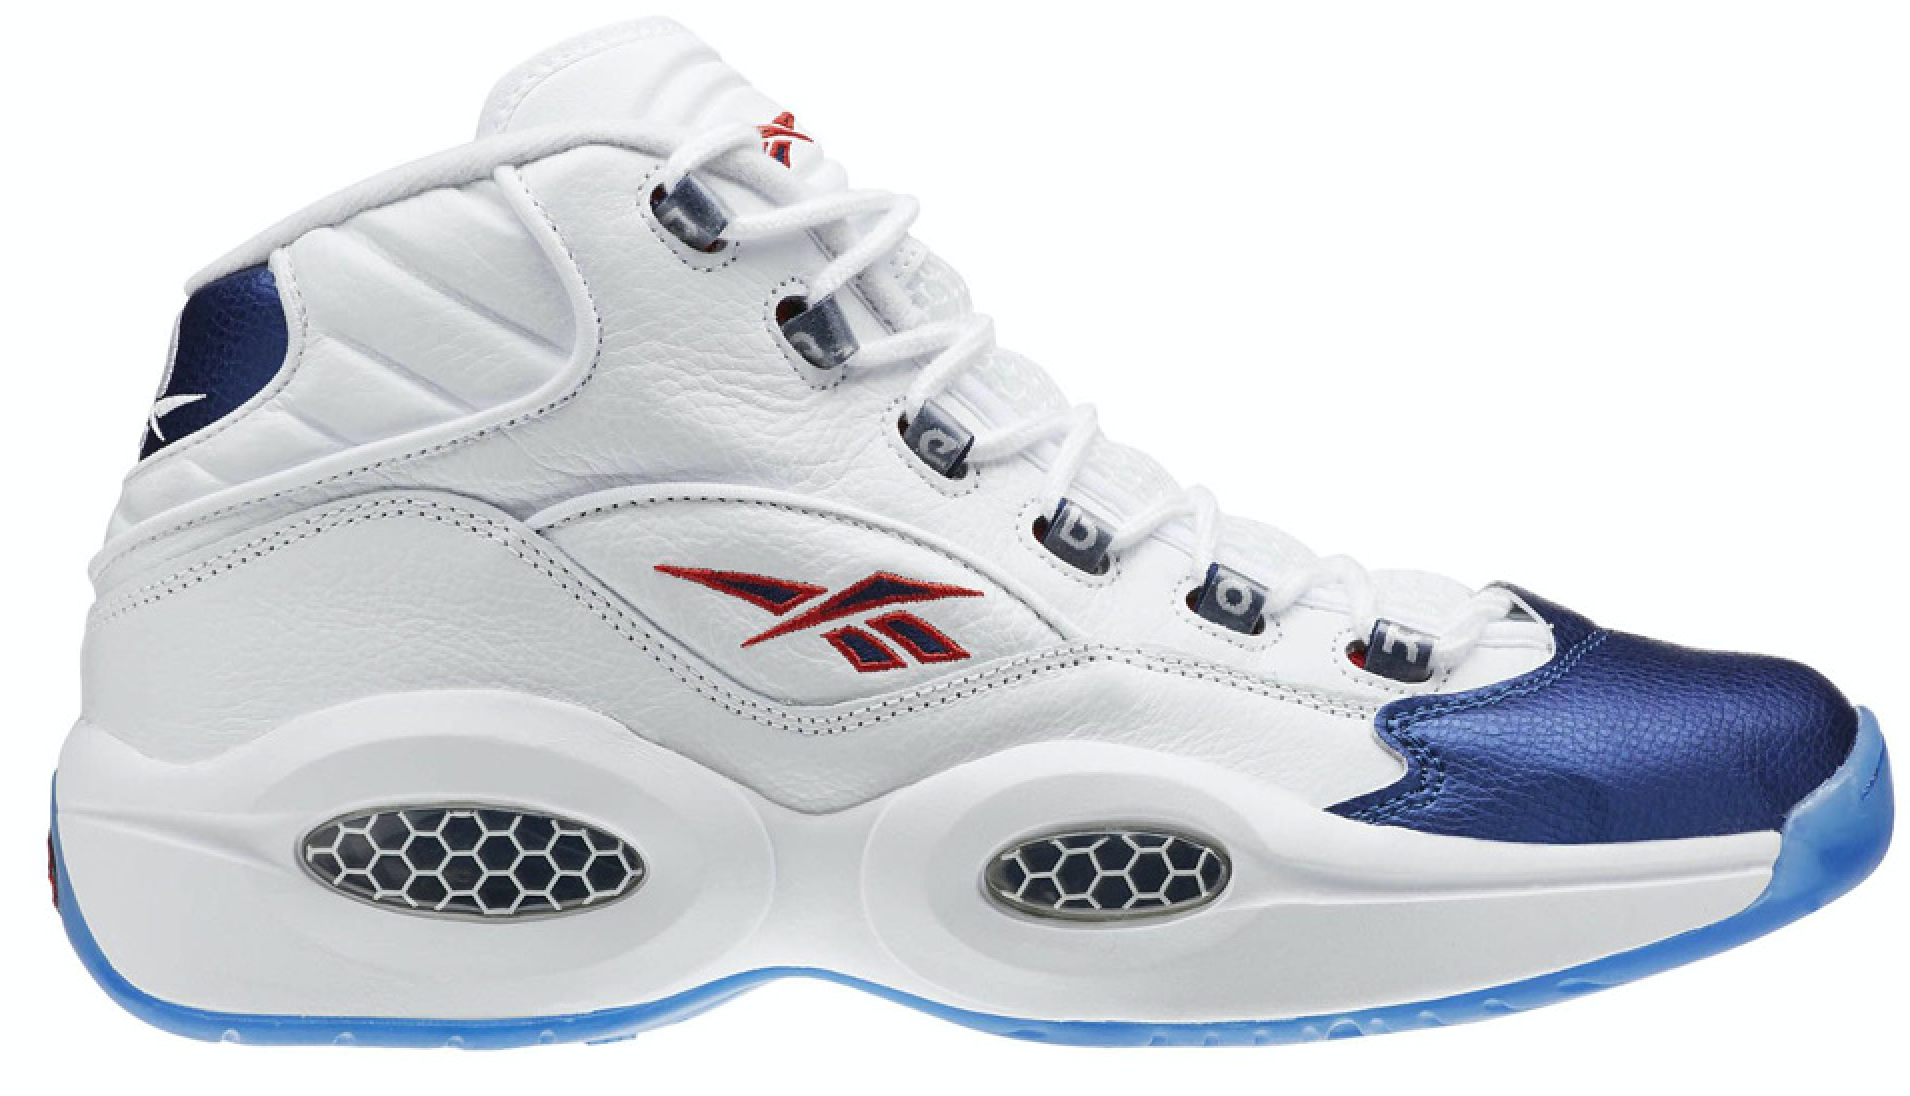 Reebok Question Mid Blue Toe 2016